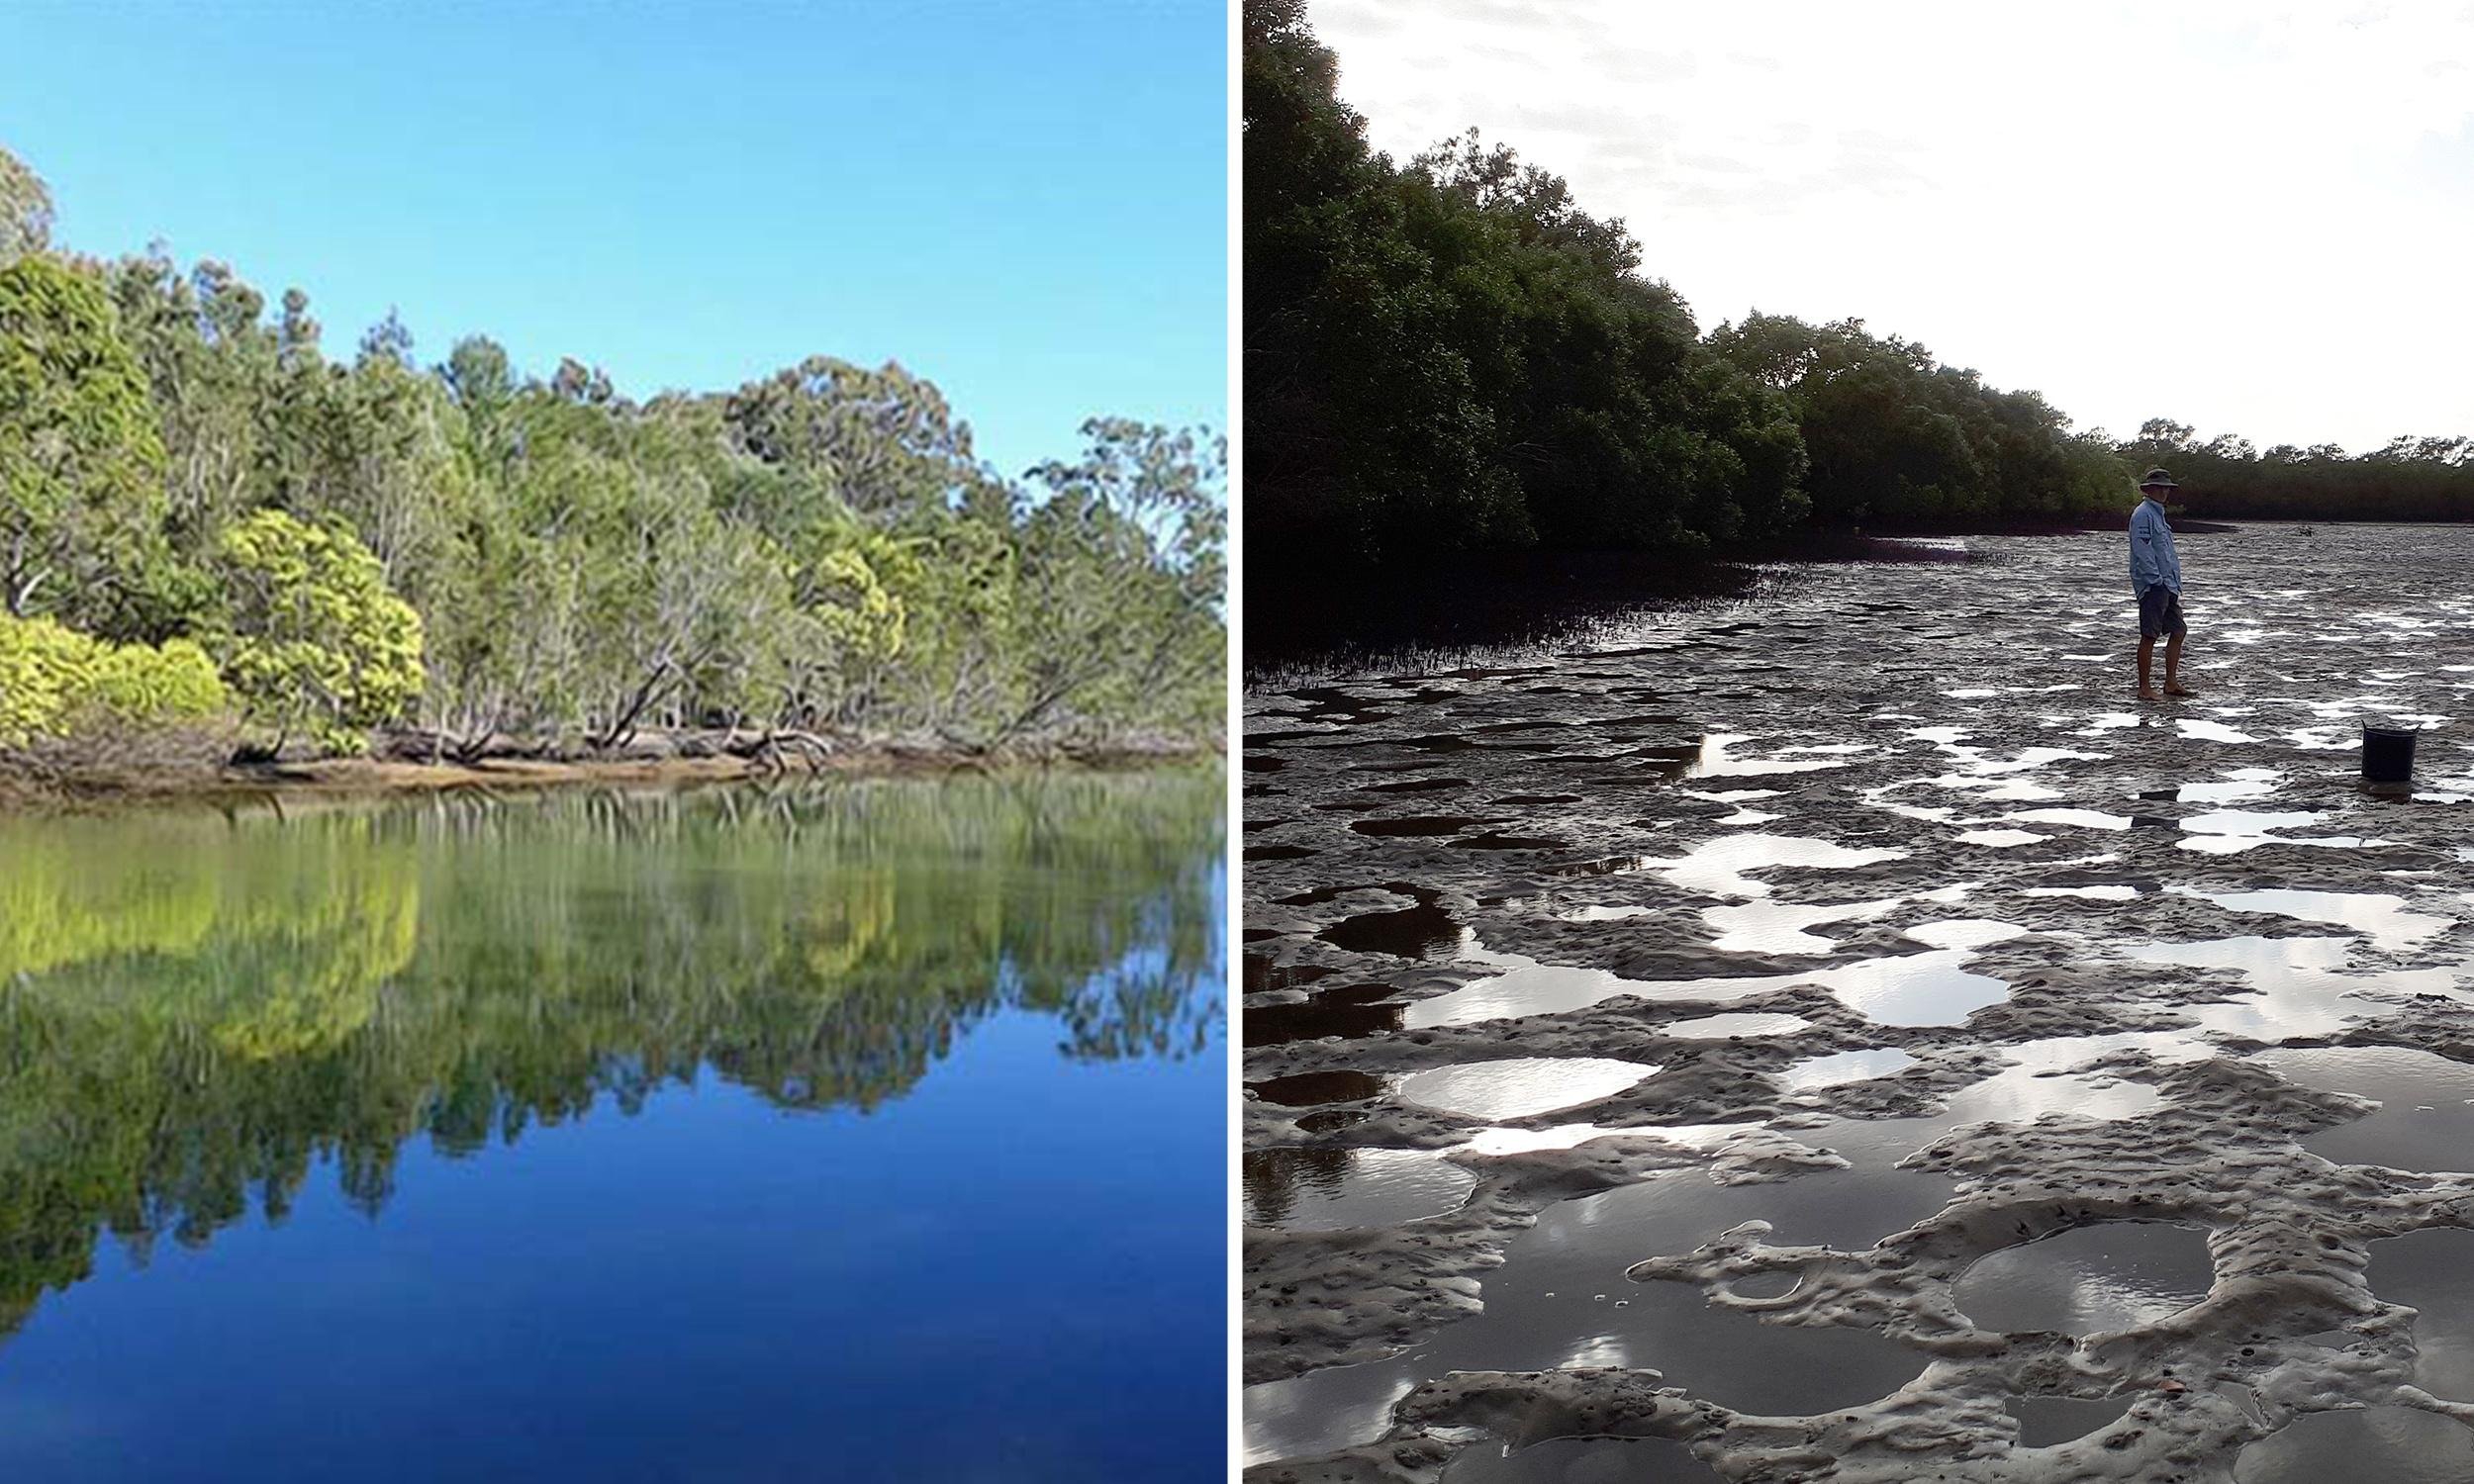 Contaminated water from Gold Coast luxury estate adds to wetland 'catastrophe'